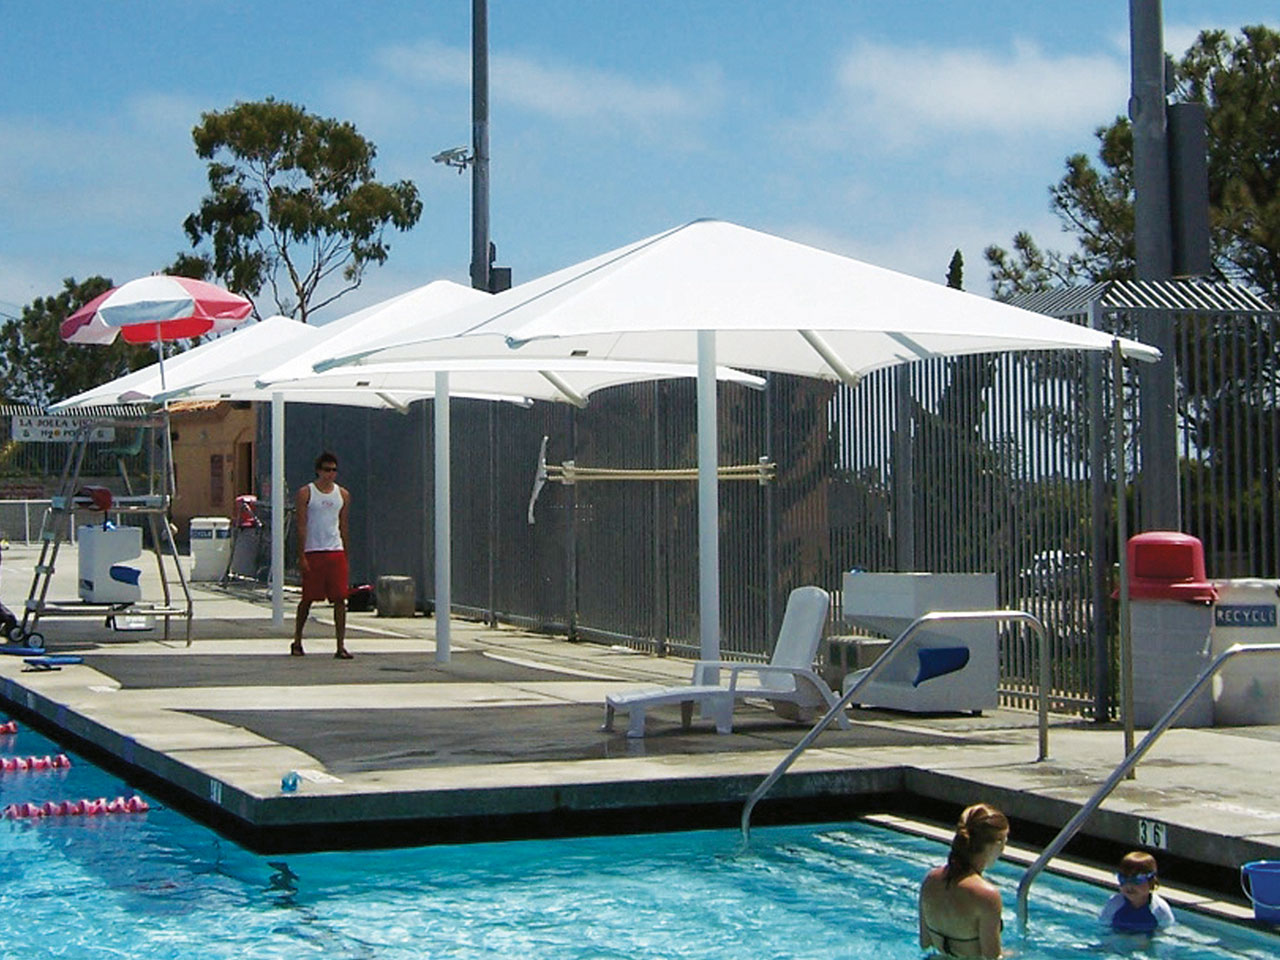 Coggan Family Aquatic Complex